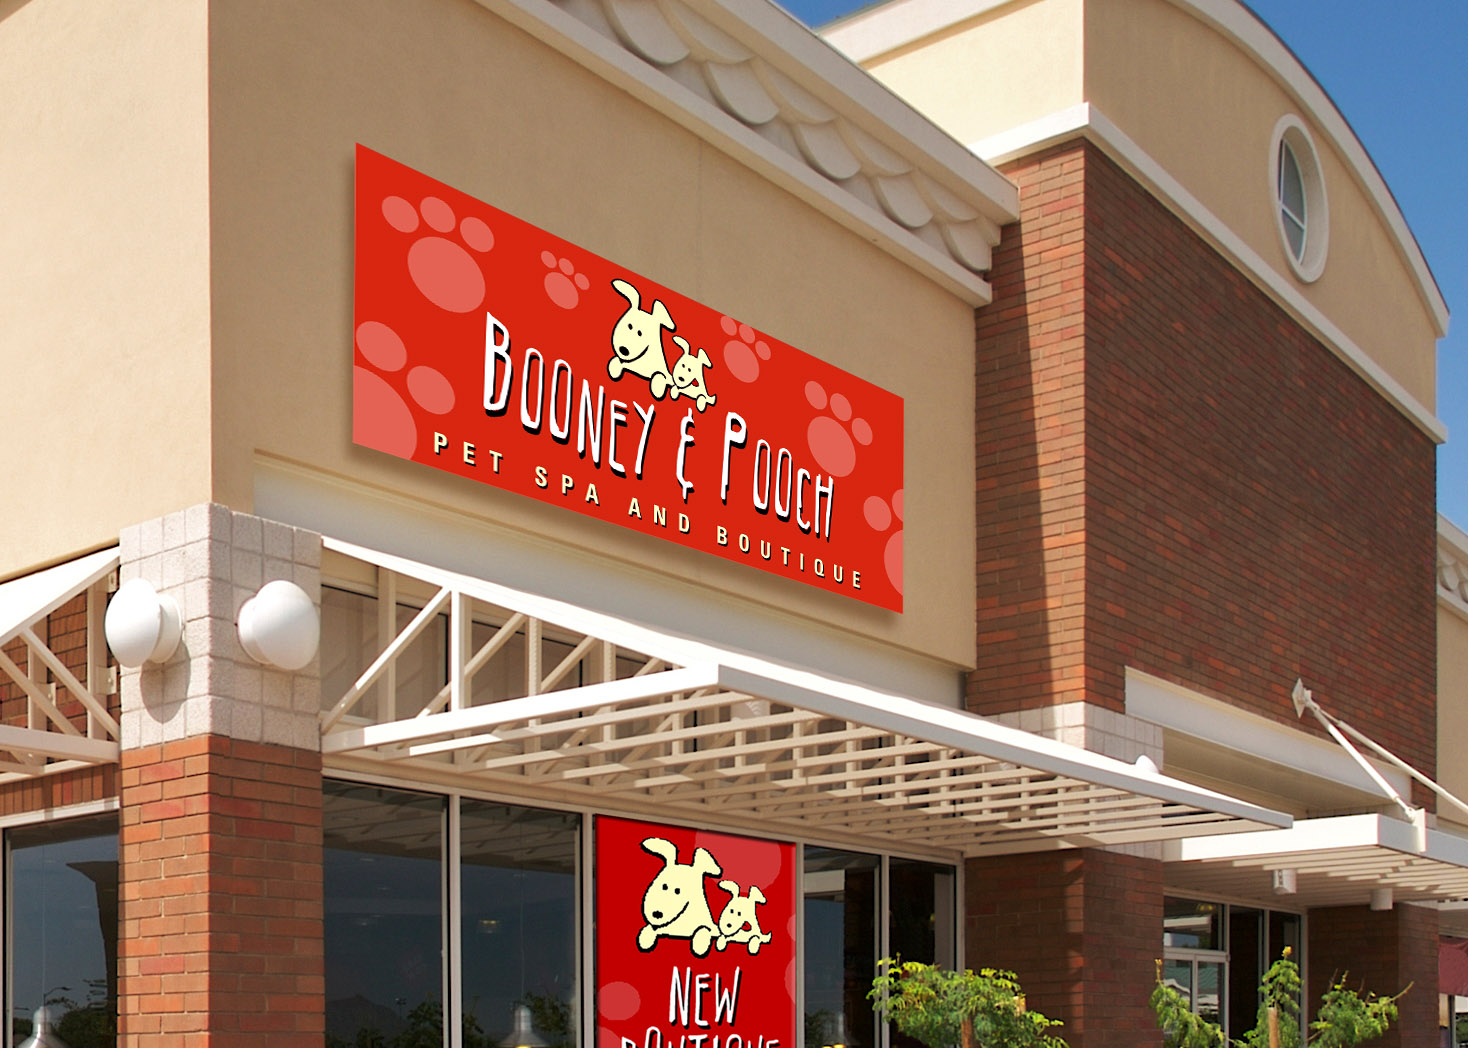 Booney and Pooch - Signage Design - Lehman Design